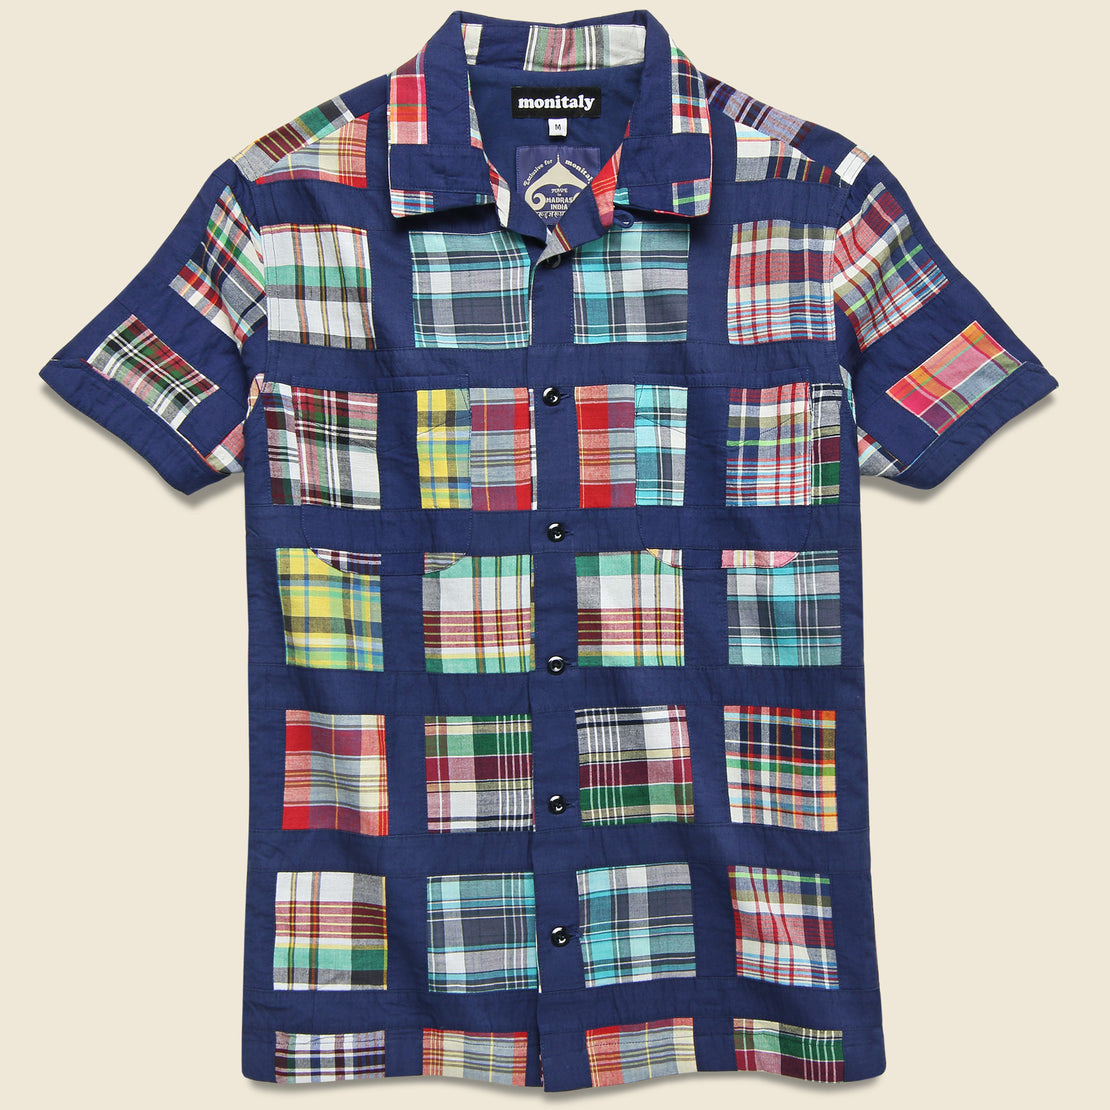 Monitaly Patchwork Vacation Shirt - Navy Madras